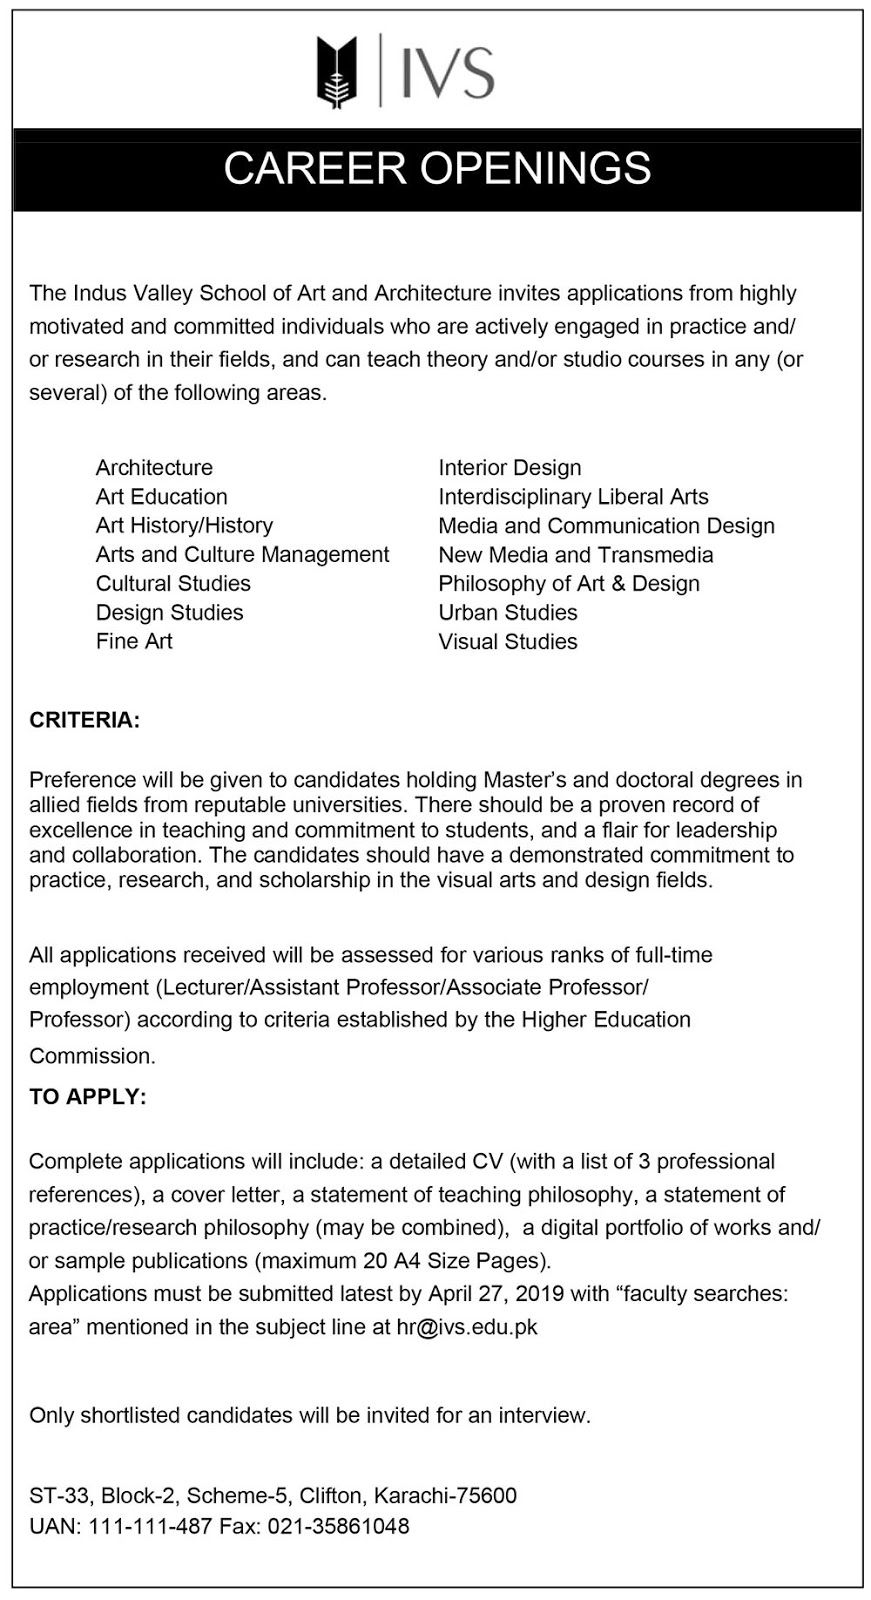 Pakistan Jobs BAZAAR: JOBS | Indus Valley School of Art and